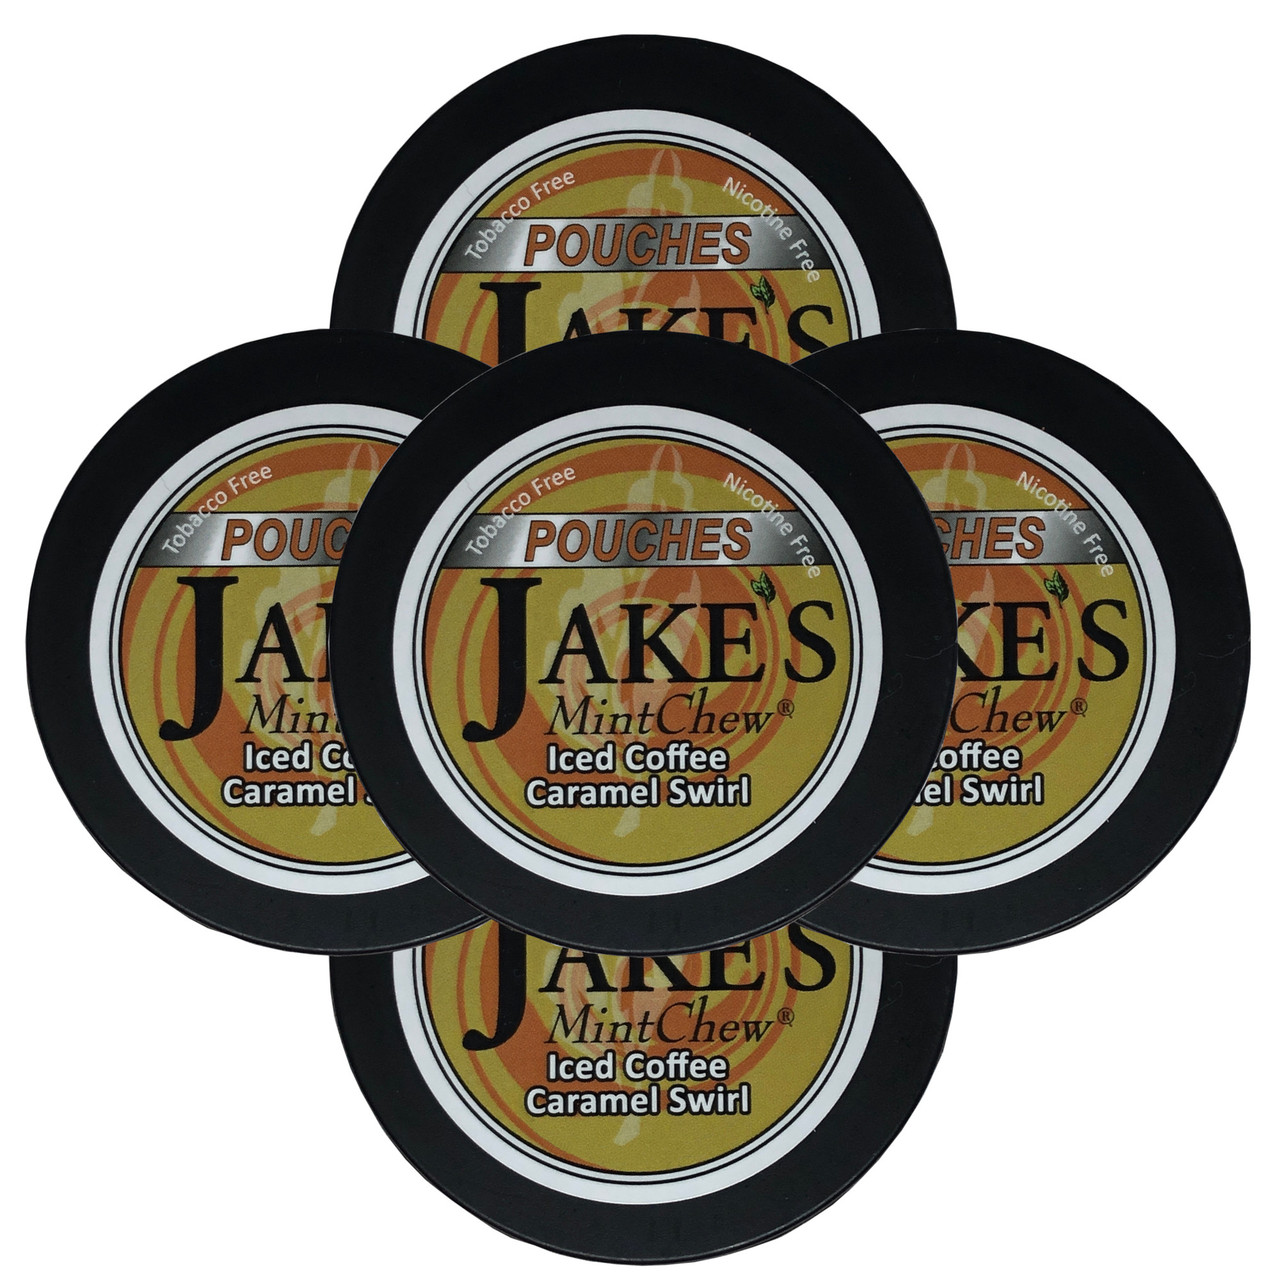 Jake's Mint Chew Pouches Iced Coffee Caramel Swirl 5 Cans